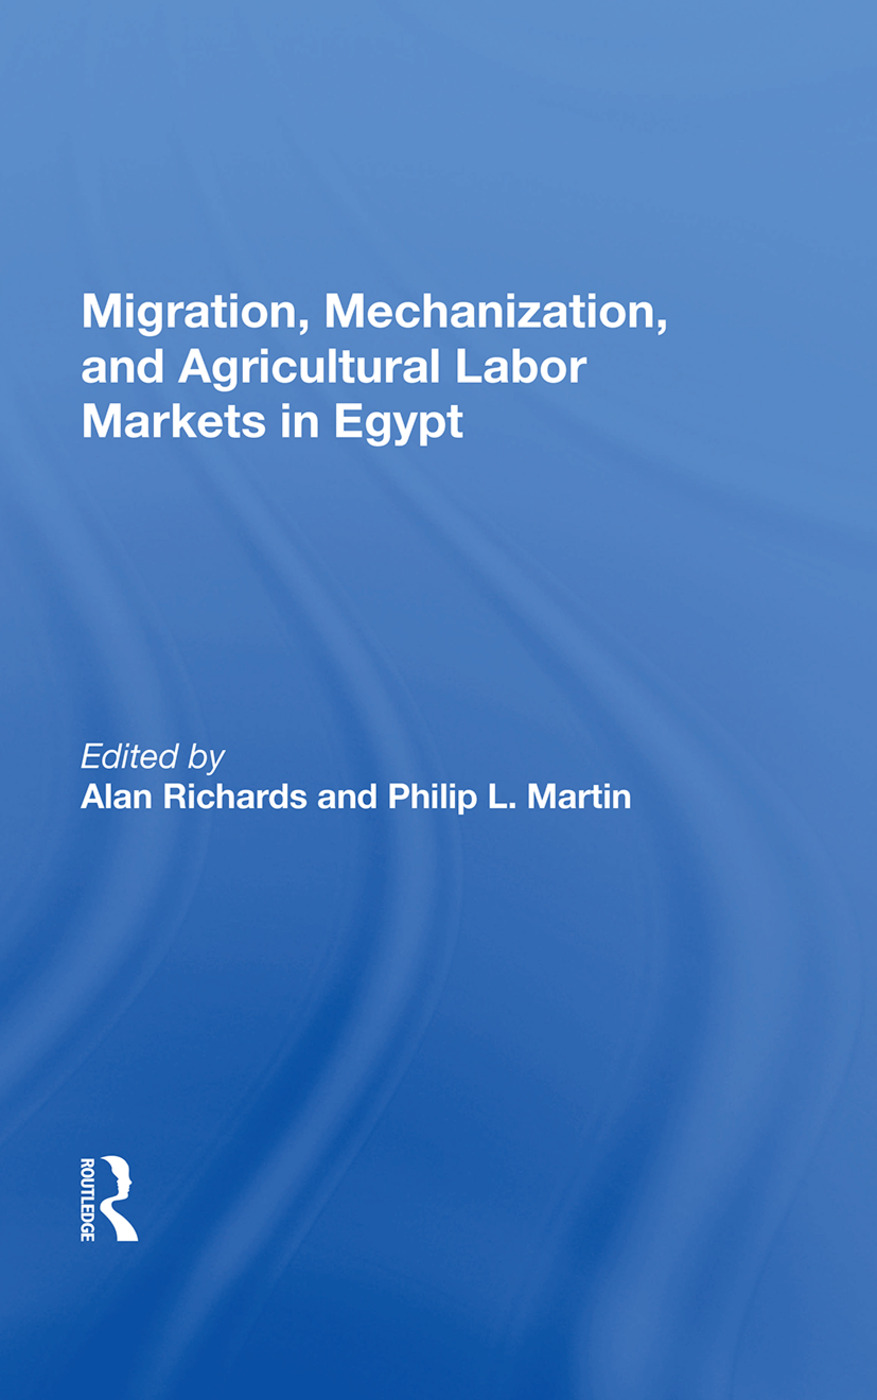 Migration, Mechanization, and Agricultural Labor Markets in Egypt